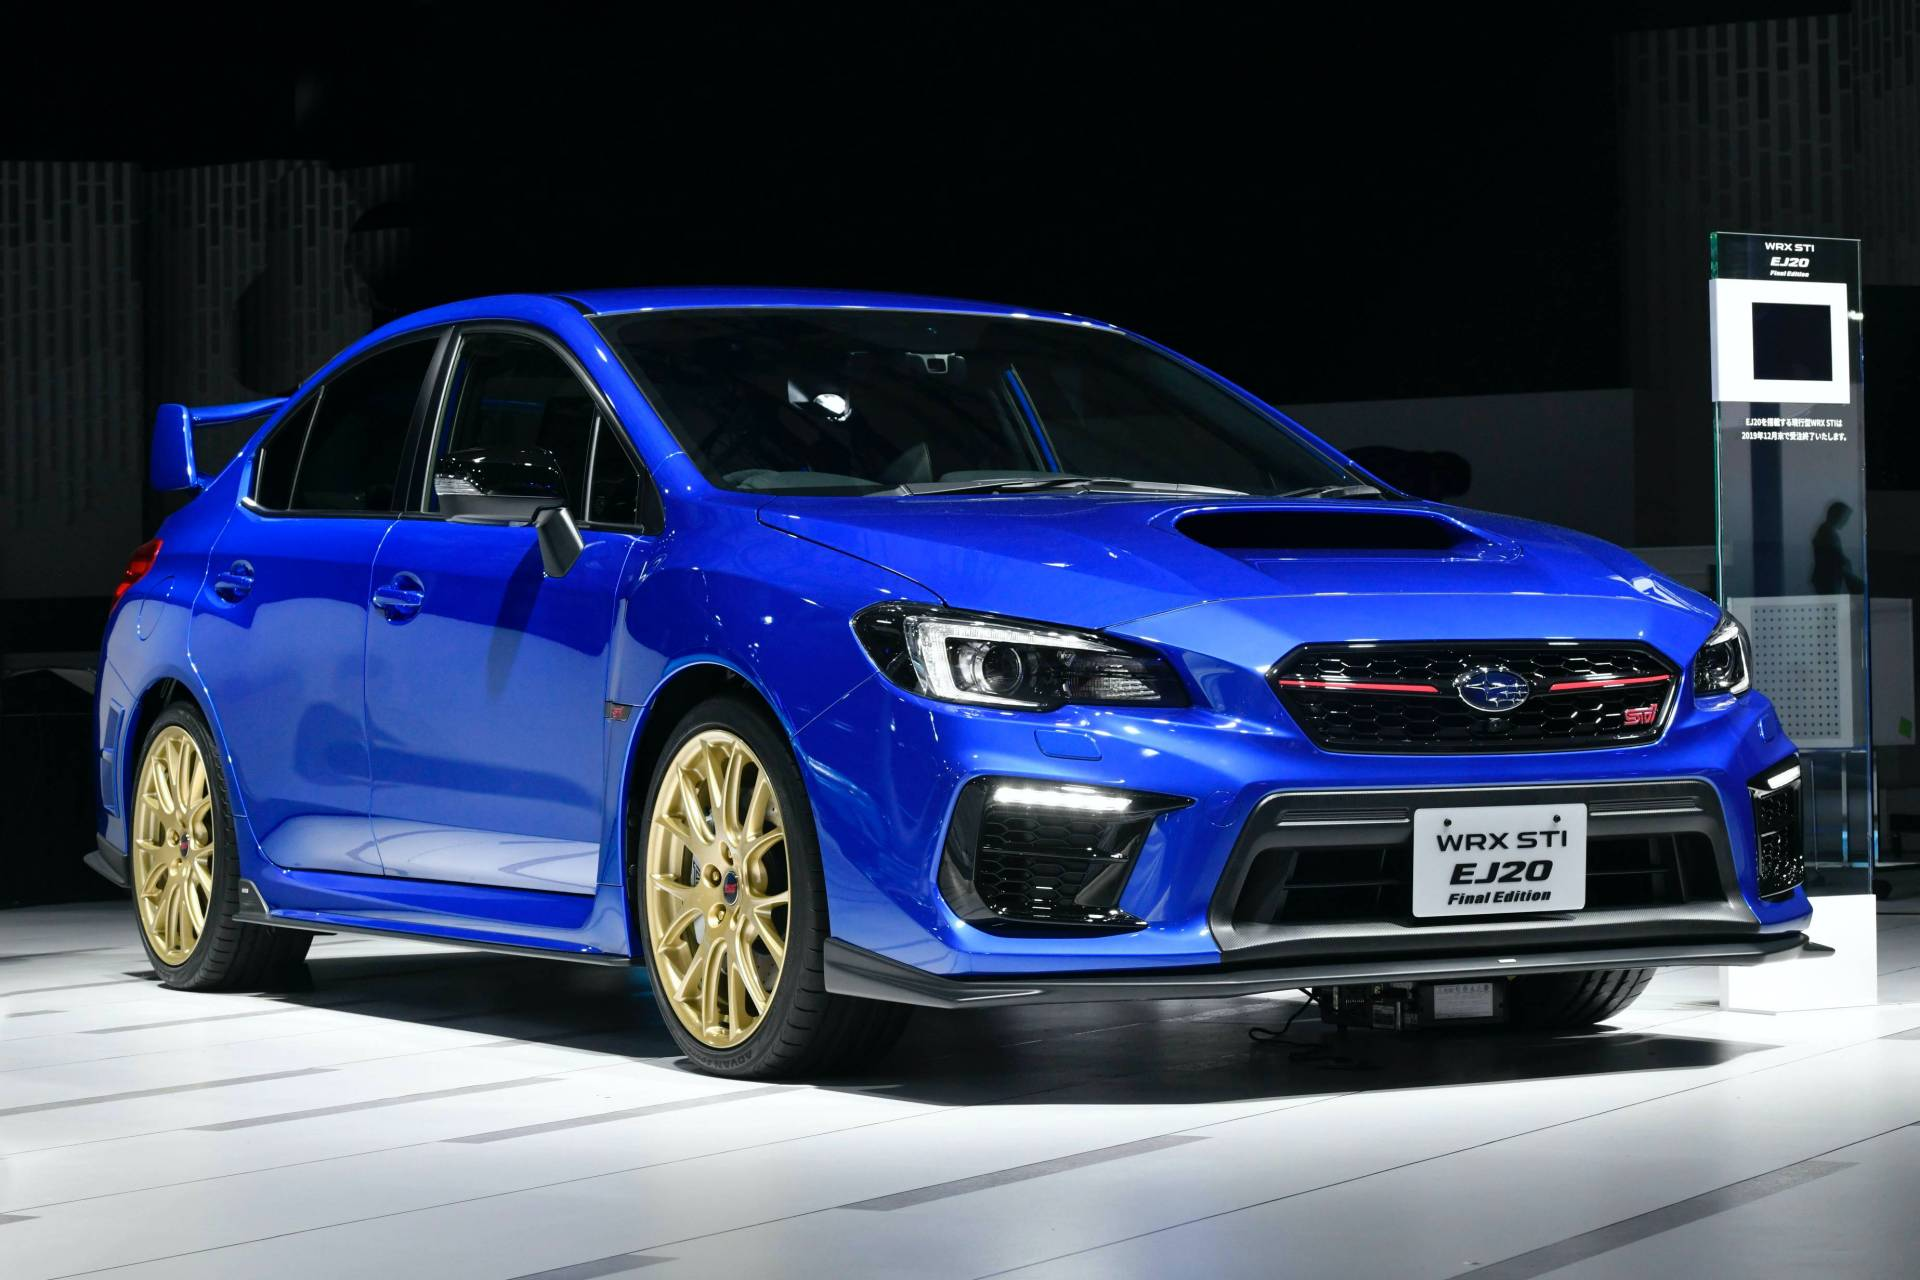 Subaru_WRX_STI_EJ20_Final_Edition_0012